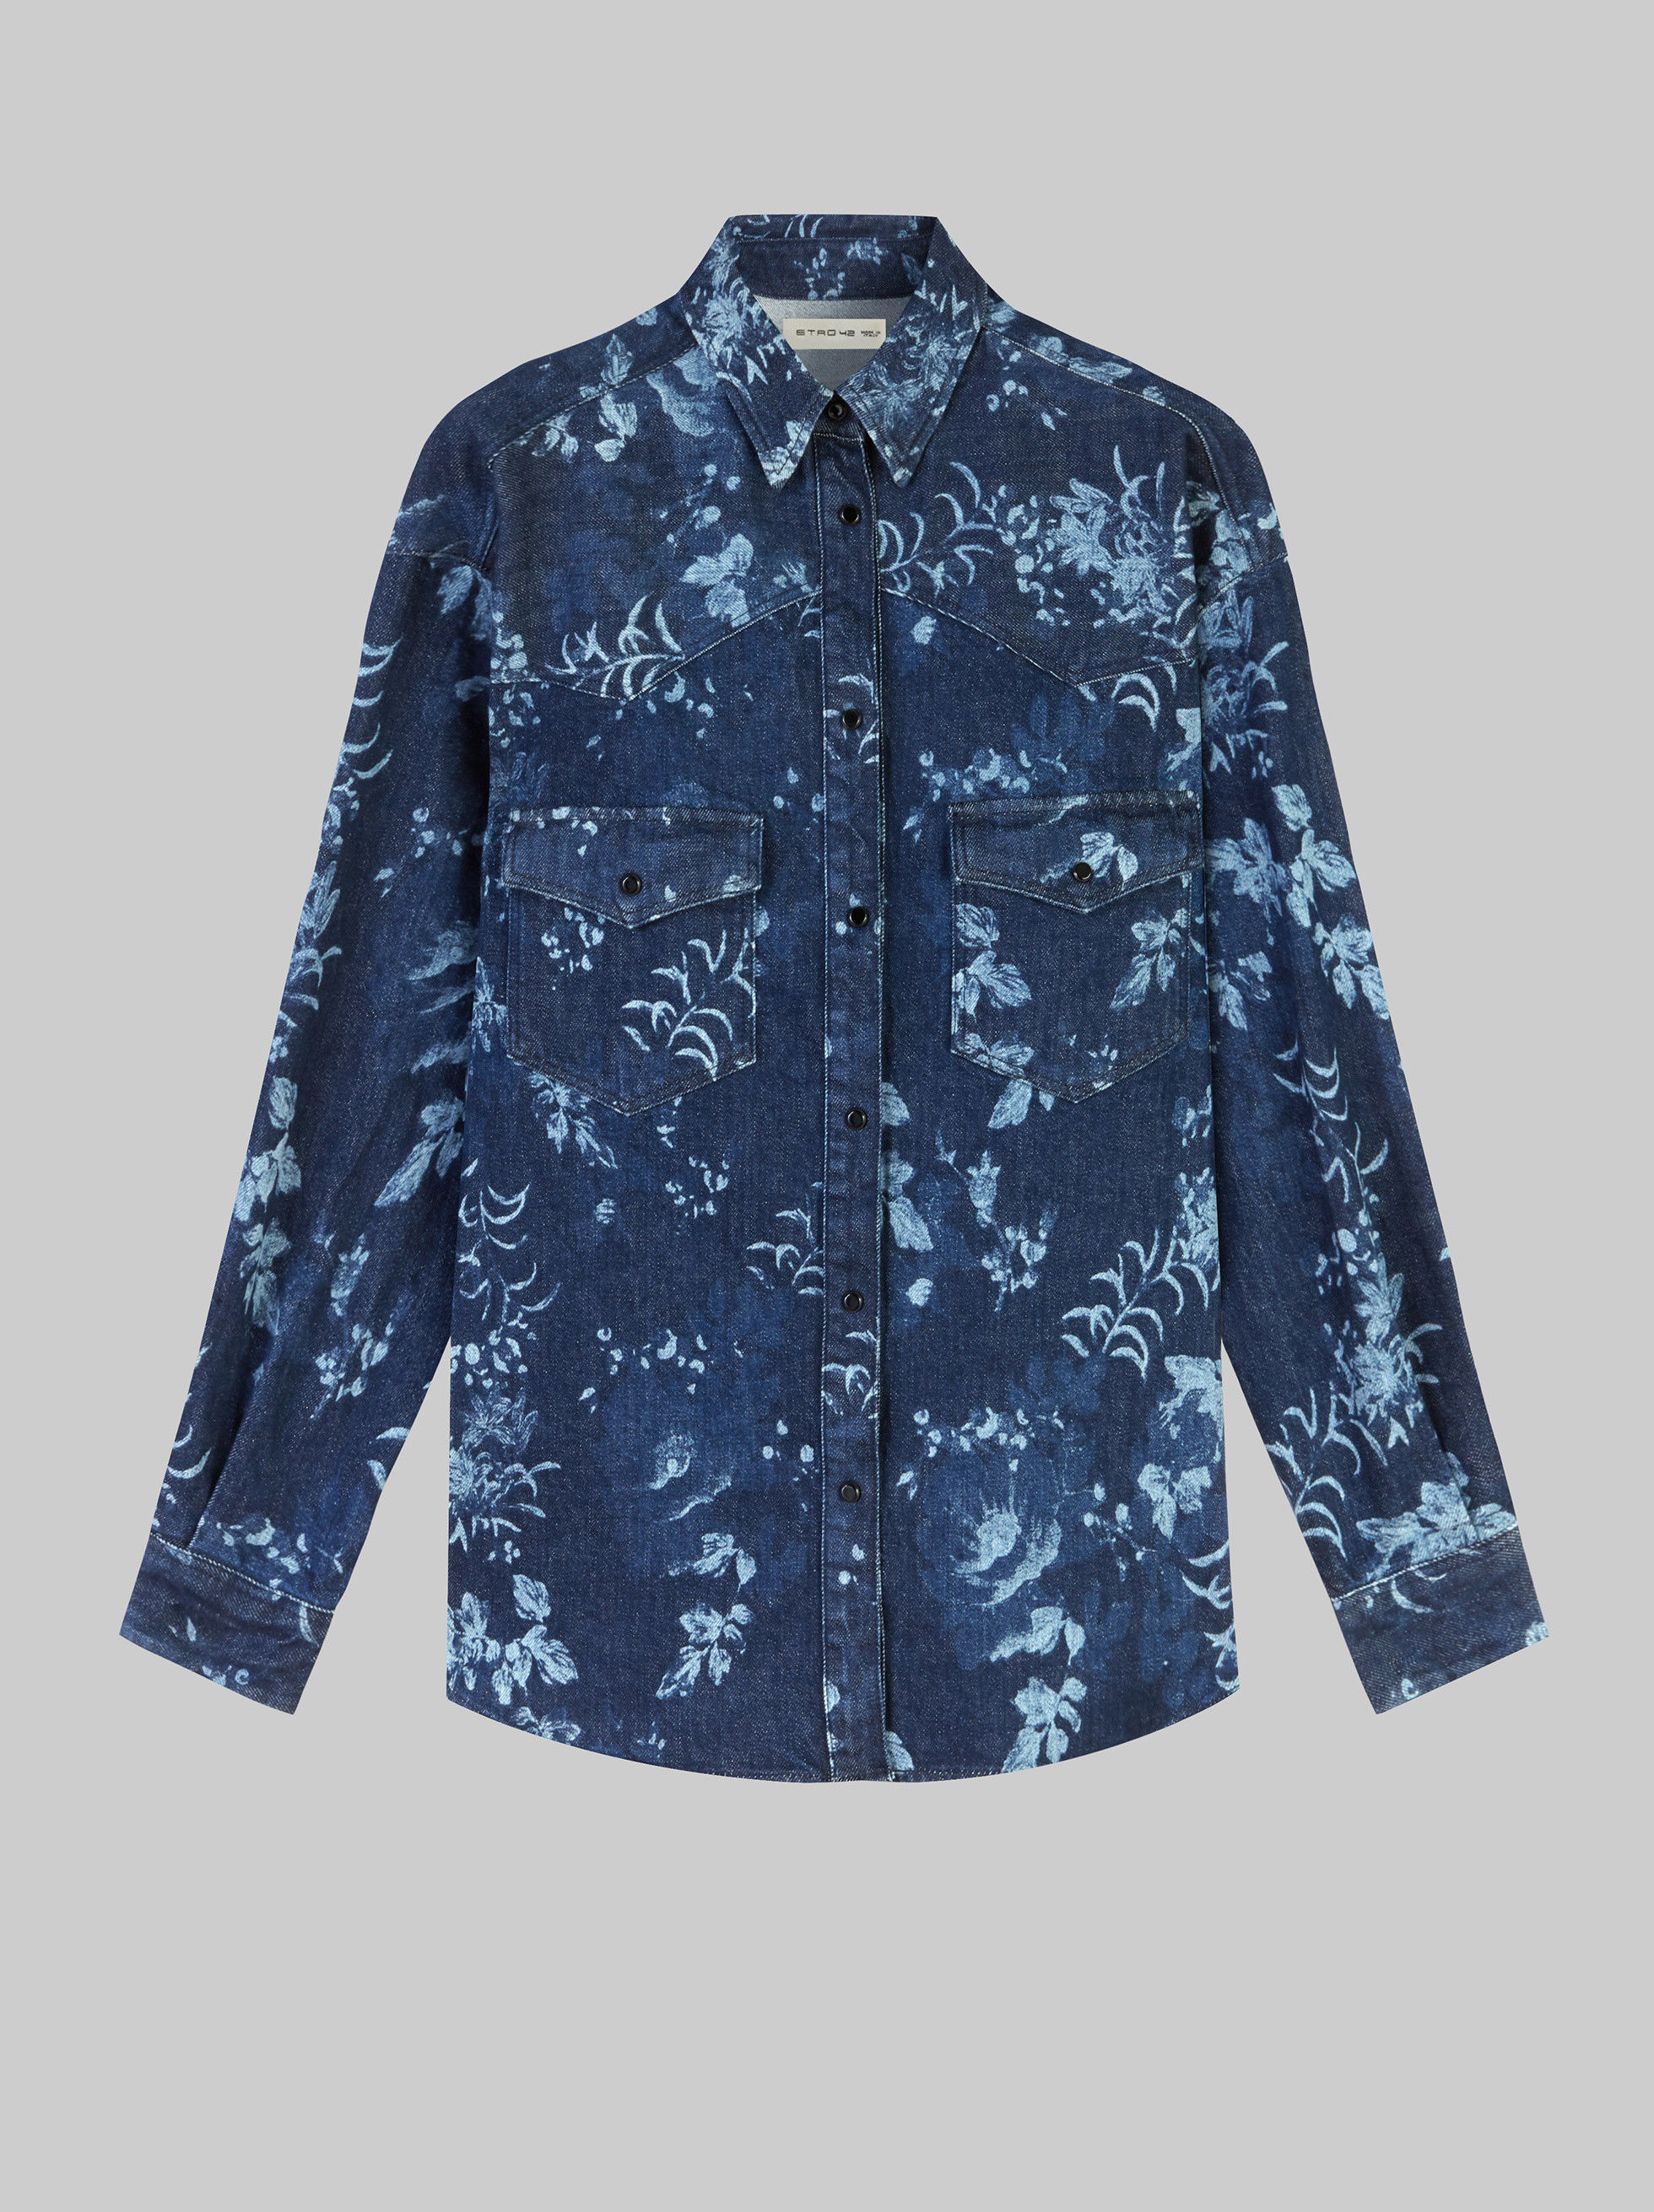 SHIRT WITH FLORAL CORROSION PATTERN